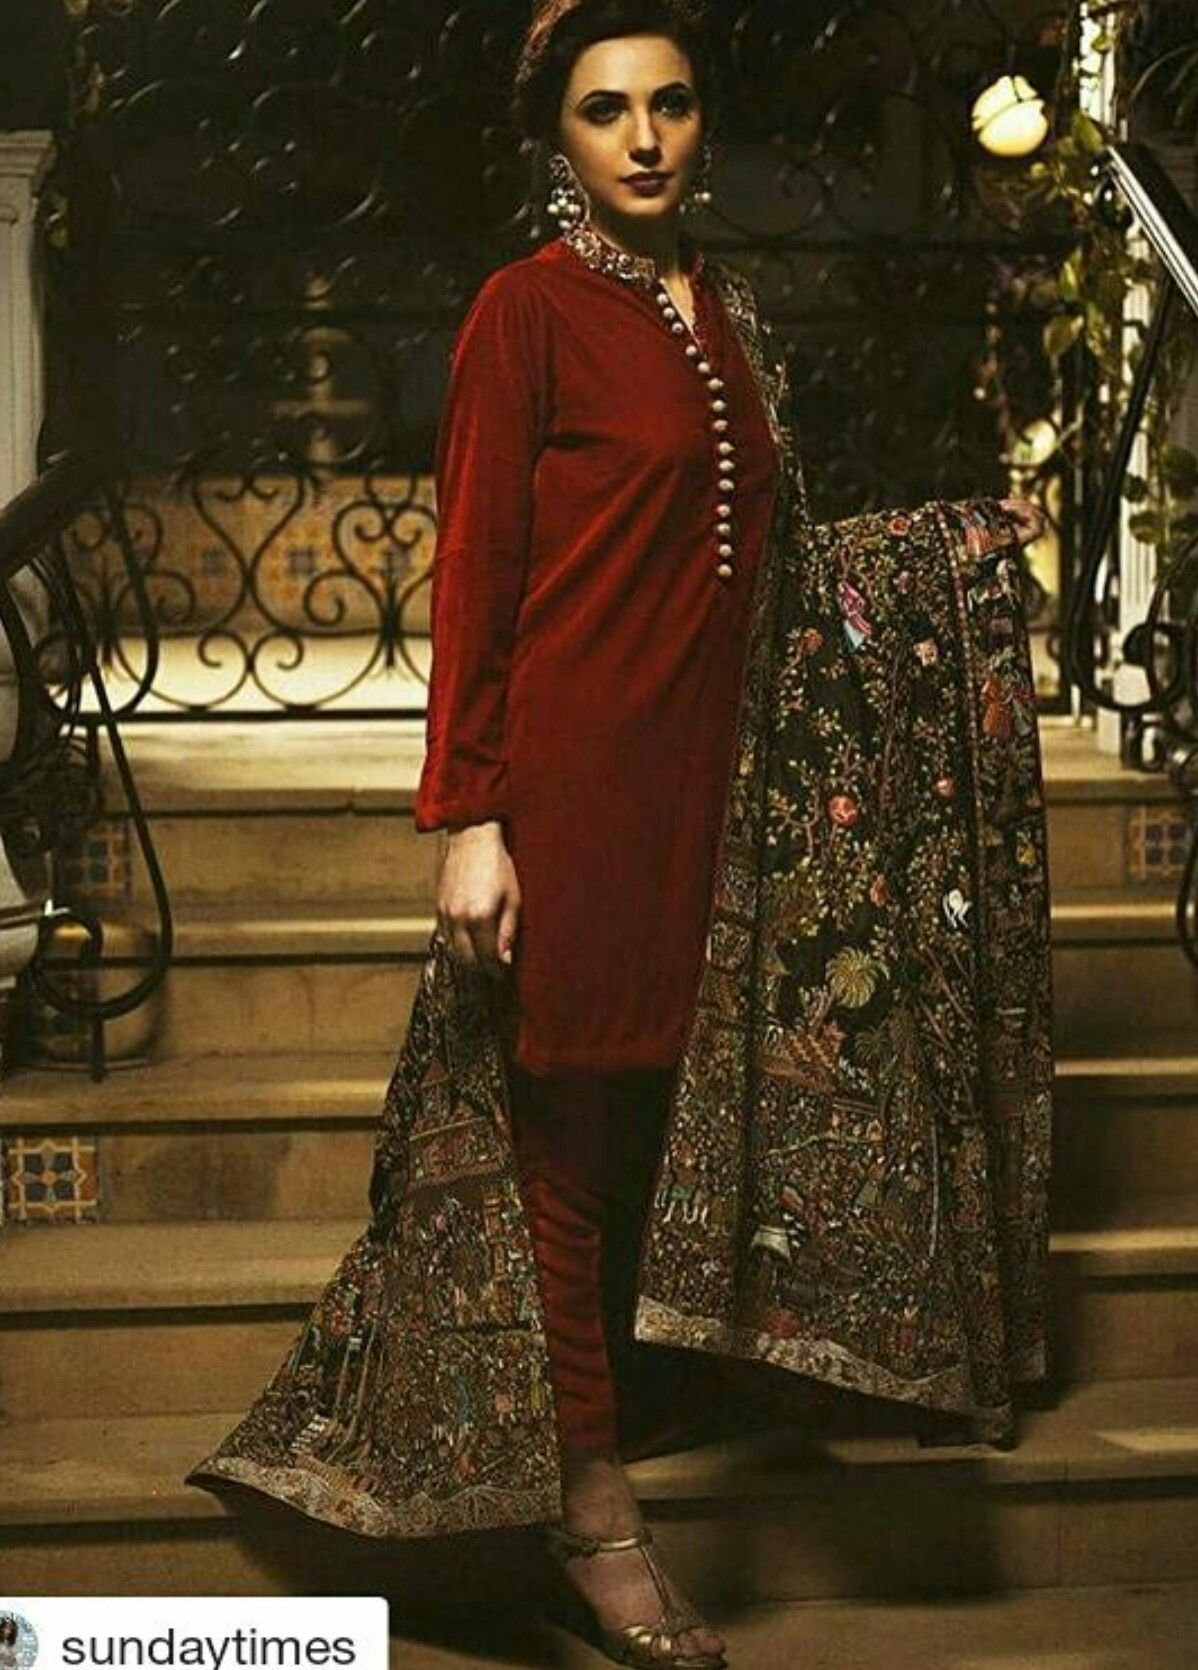 d3be75e8b3 NadiaAzwer Velvet Pakistani Dress Design, Pakistani Couture, Pakistani  Outfits, Indian Couture, Indian